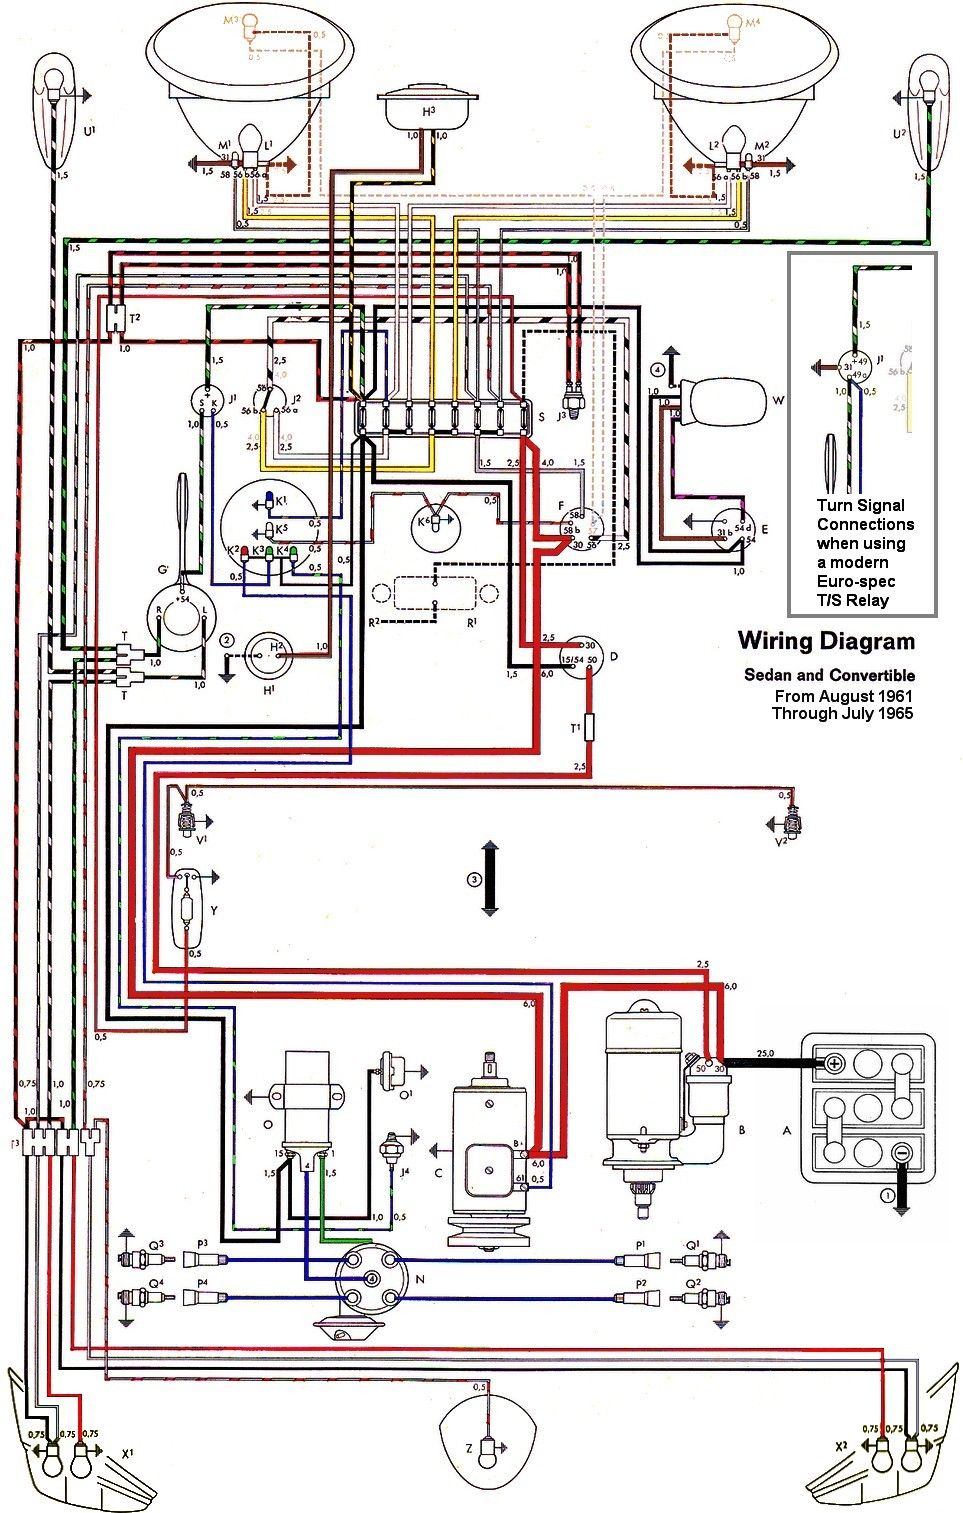 wiring diagram vw beetle sedan and convertible 1961 1965 vw wiring diagram vw beetle 1971 wiring [ 963 x 1513 Pixel ]